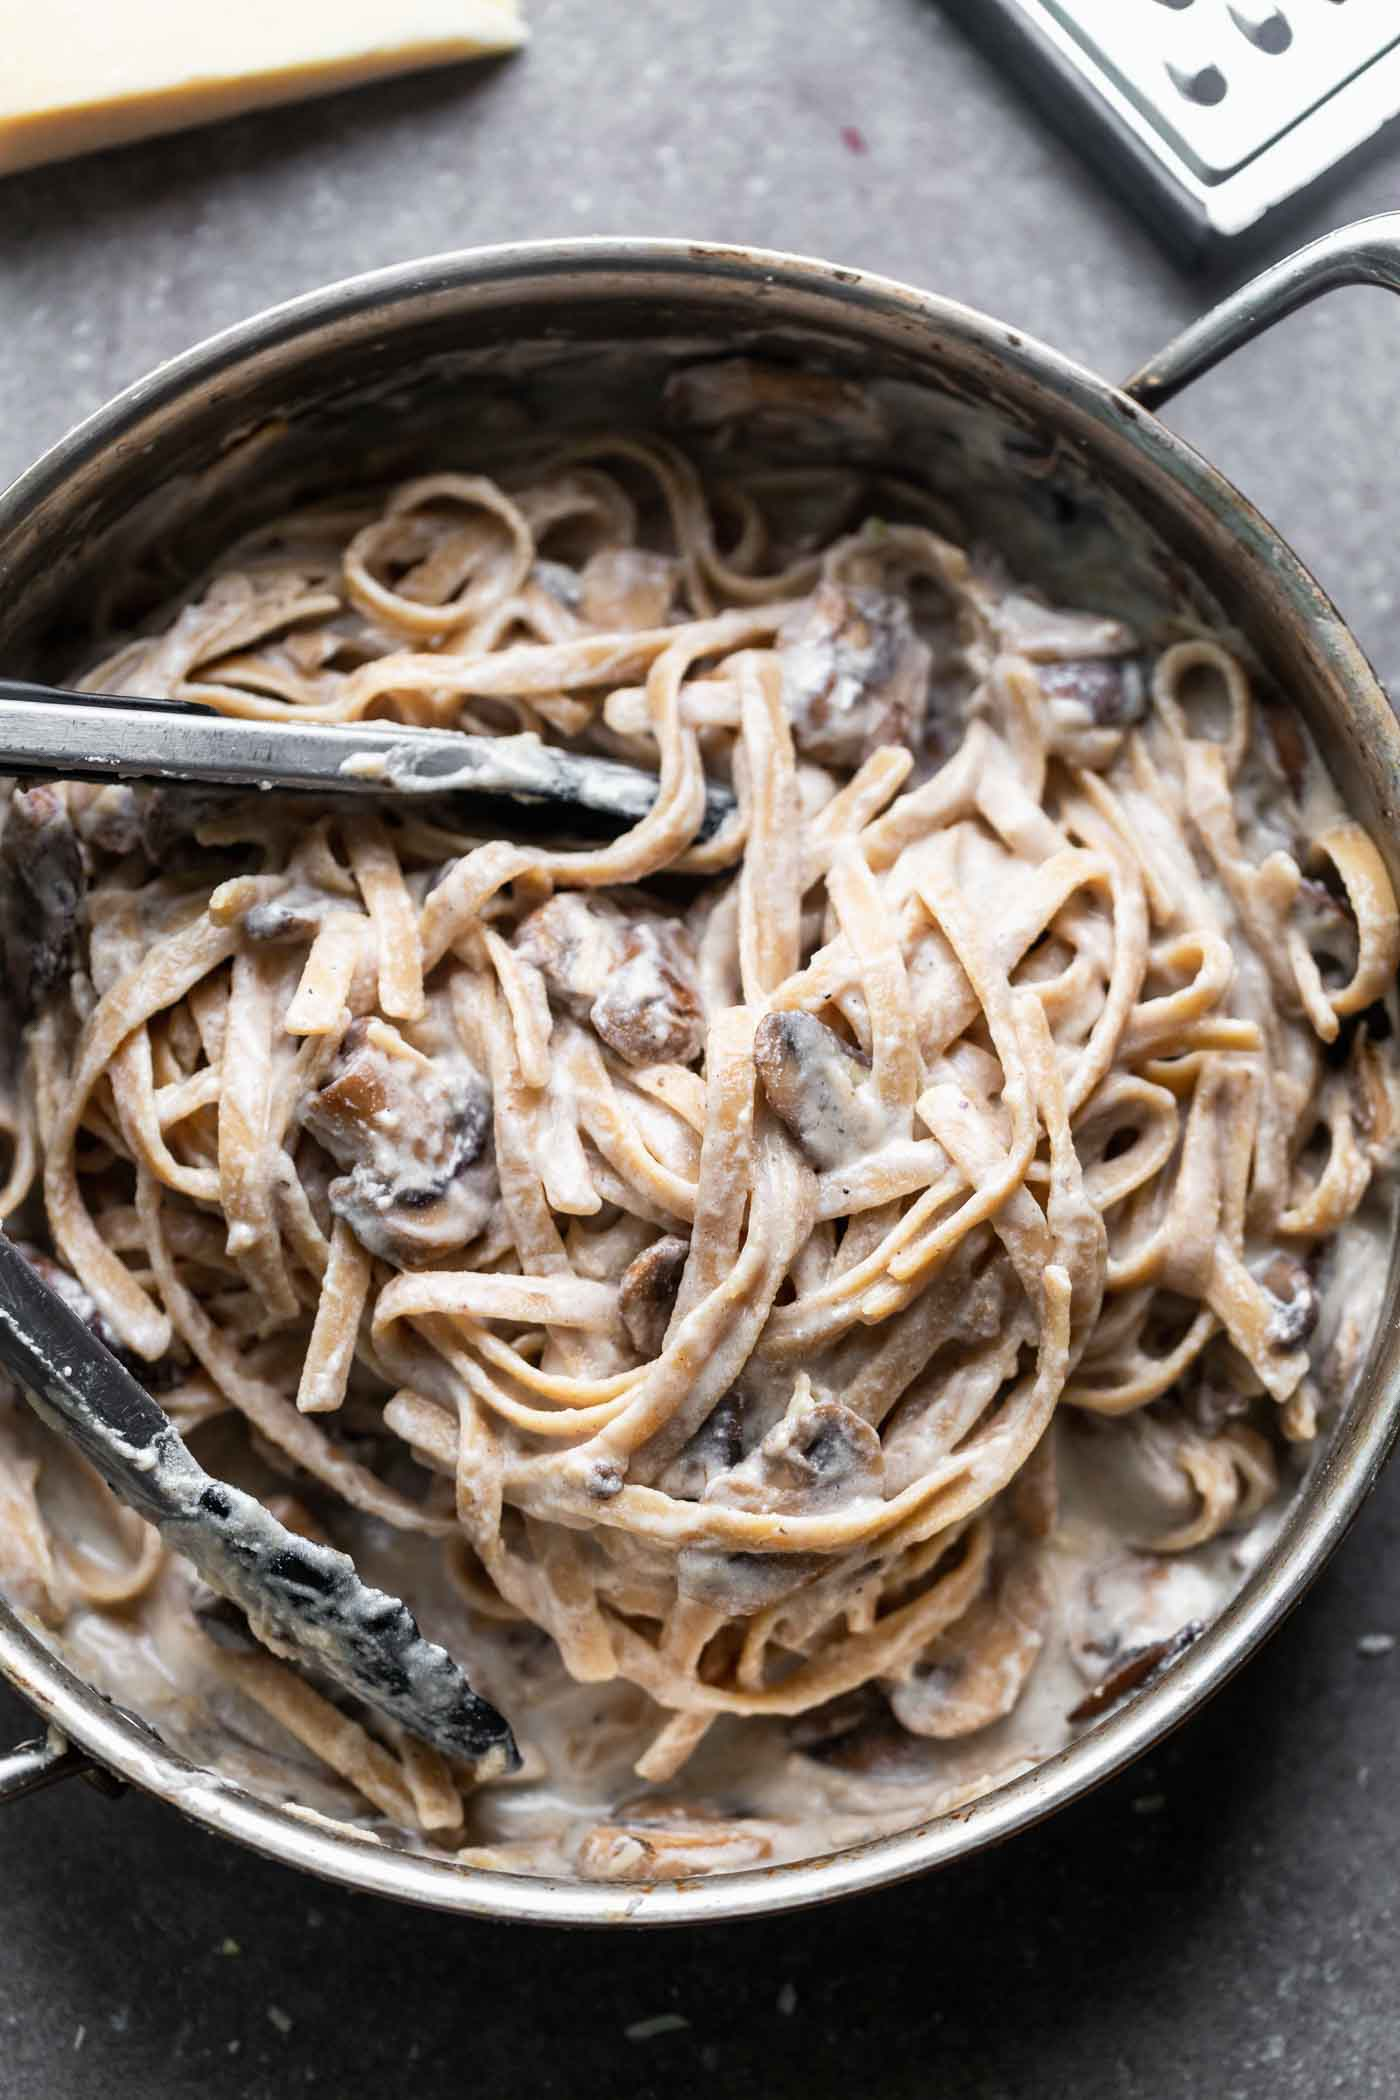 Creamy Mushroom and Ricotta Pasta is the perfect way to get your pasta fix this winter season! Easy to prepare with minimal ingredients and a sure-fire hit with pasta lovers.